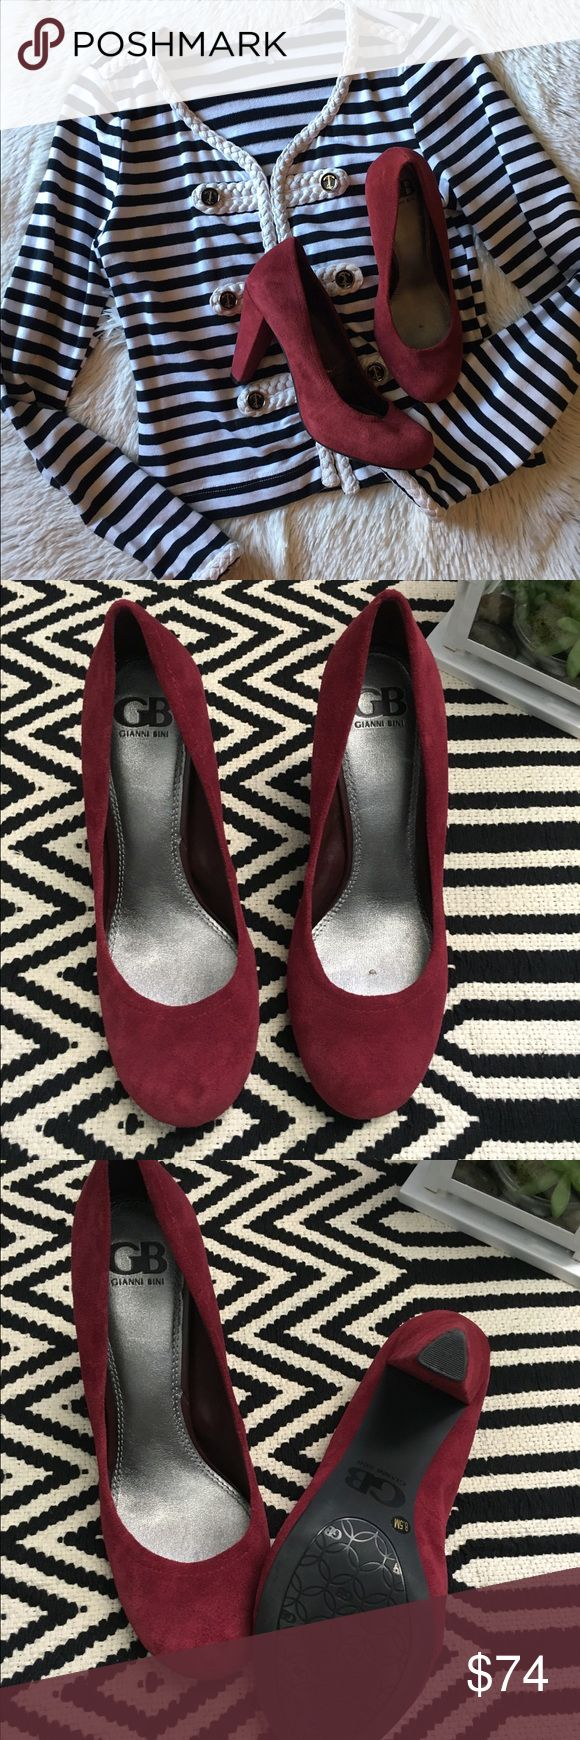 Gianni Bini burgundy suede pumps Like new condition. Gianni Bini burgundy suede pumps. Size 8.5M Gianni Bini Shoes Heels